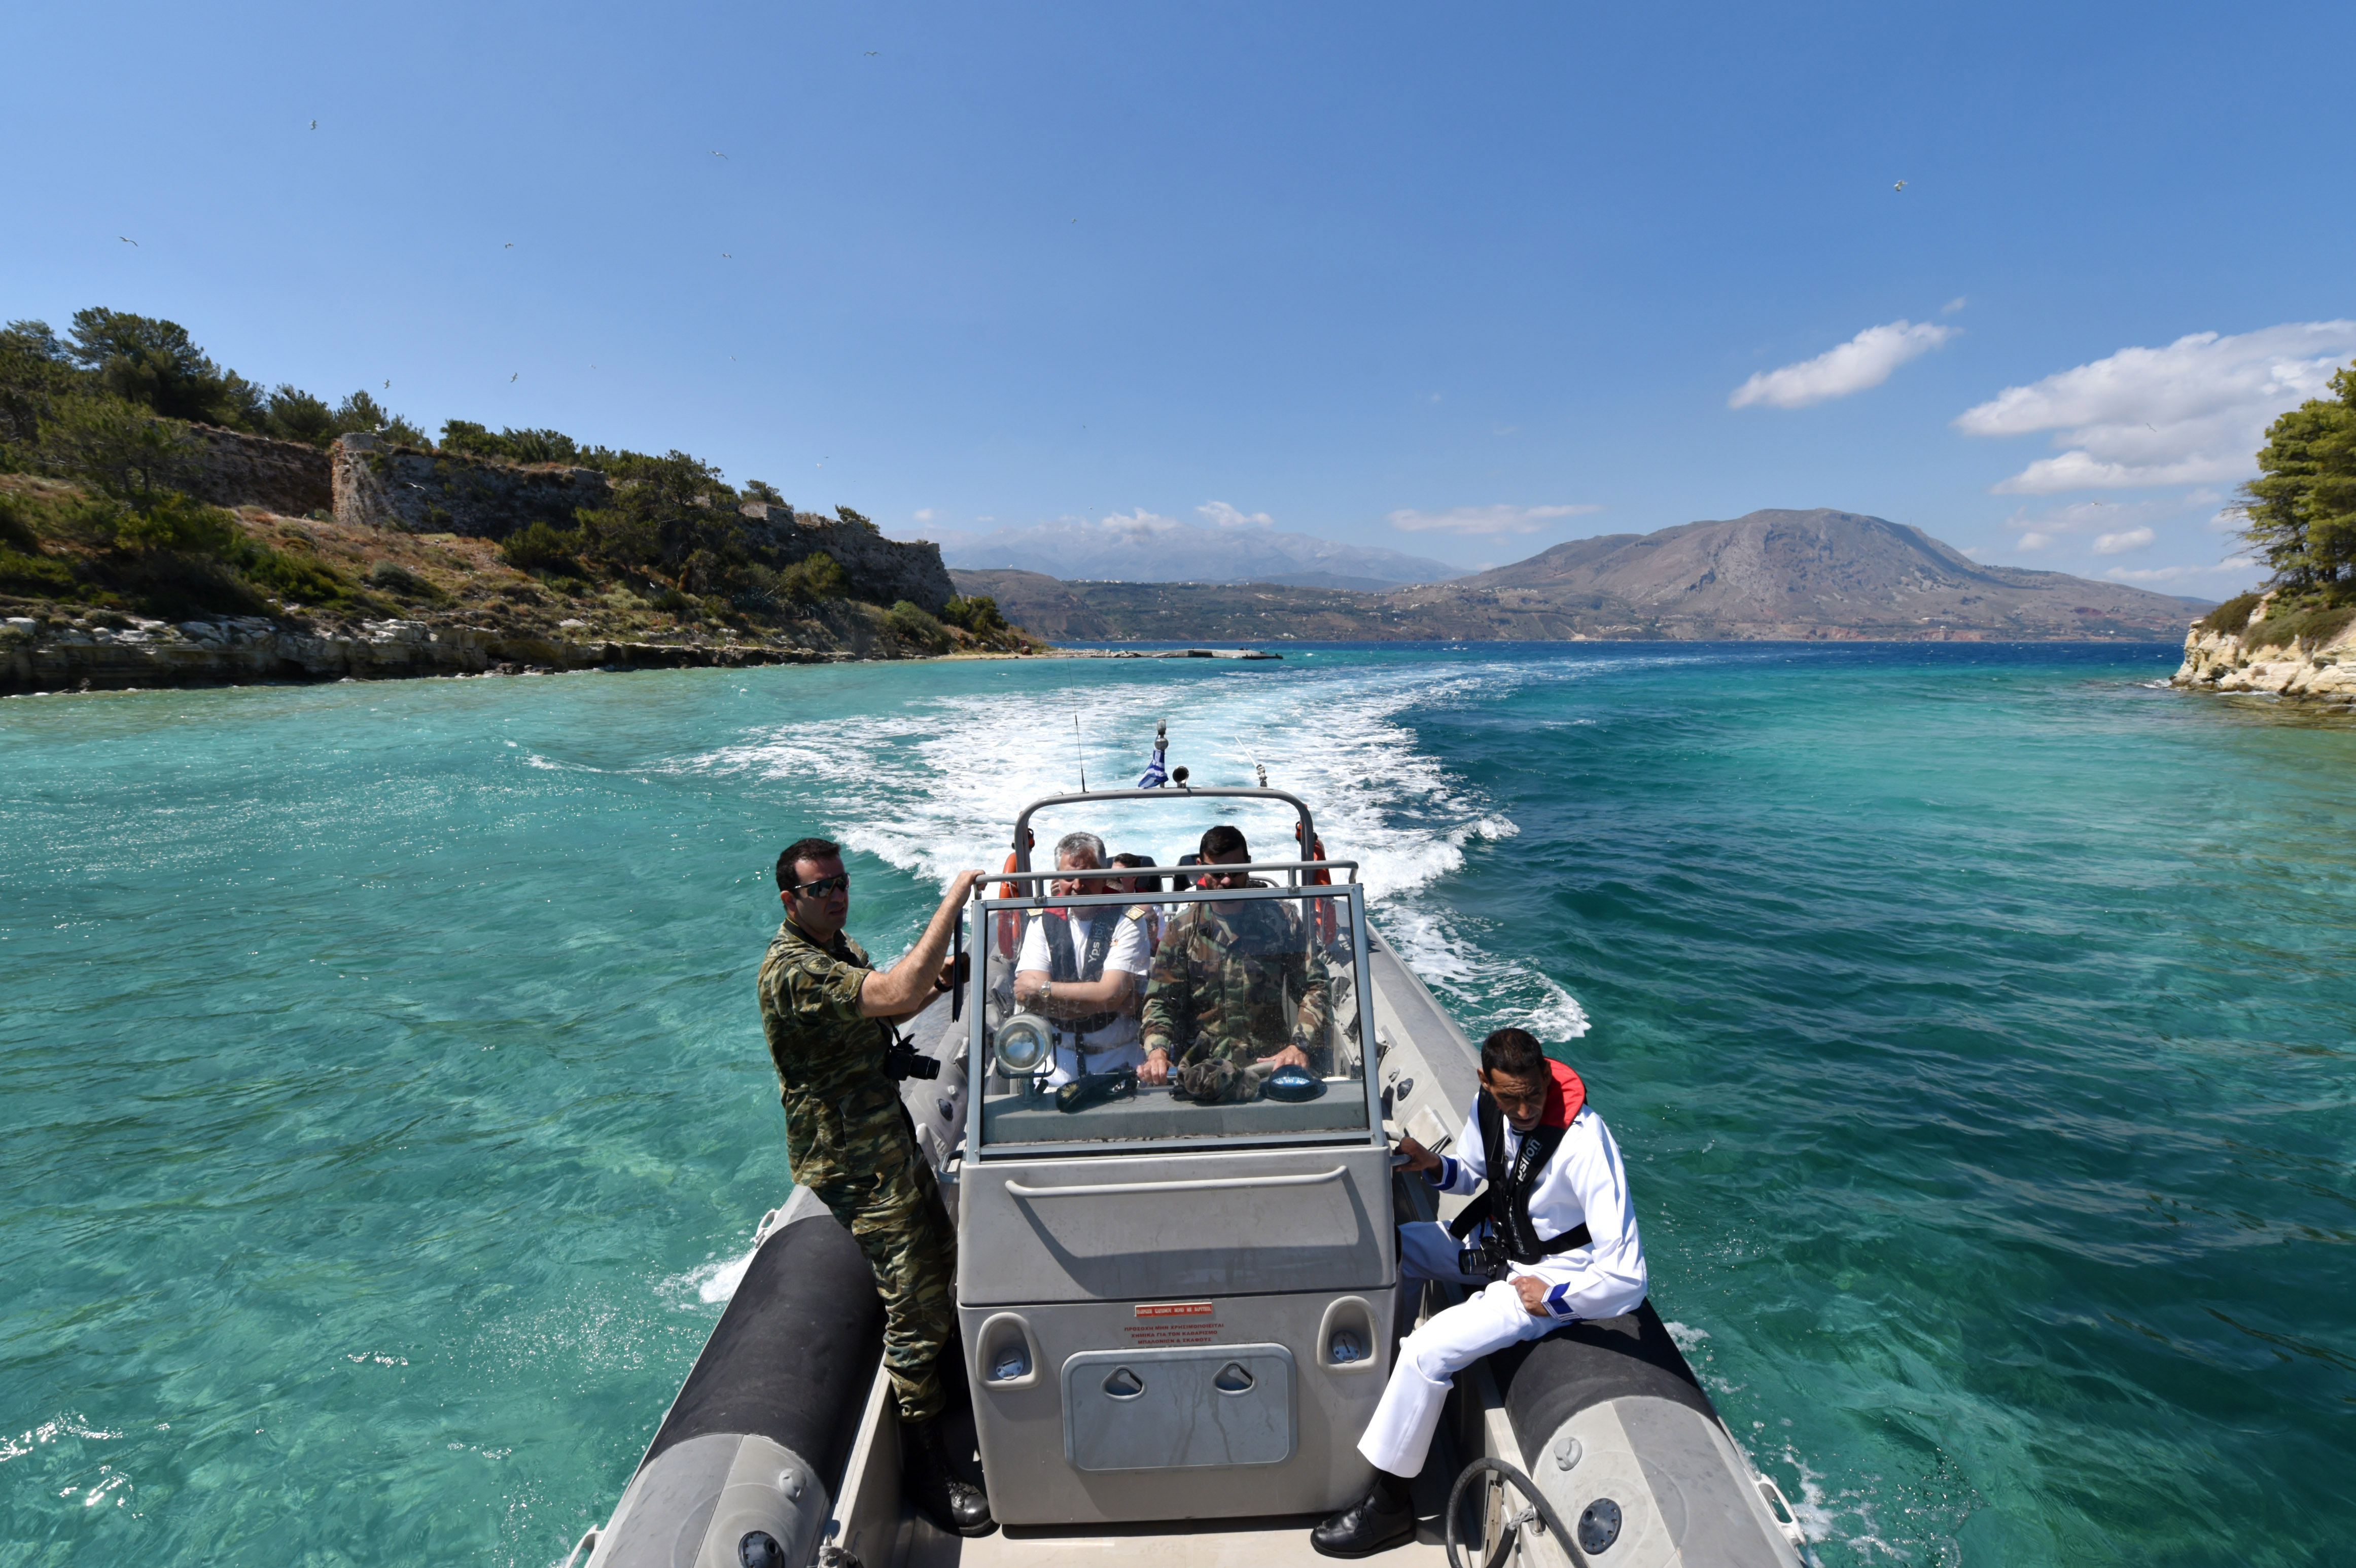 160517-N-XT273-320 SOUDA BAY, Greece (May 17, 2016) Maritime professionals from North Africa, Europe and the U.S. take a tour of Naval Support Activity Souda Bay on a Hellenic rigid hull inflatable boat after the Exercise Phoenix Express 2016 opening ceremony May 17. Phoenix Express 2016, sponsored and facilitated by U.S Africa Command, is designed to improve regional cooperation, increase maritime domain awareness, information-sharing practices, and operational capabilities to enhance efforts to achieve safety and security in the Mediterranean Sea. (U.S. Navy photo by Mass Communication Specialist 2nd Class Justin Stumberg/Released)